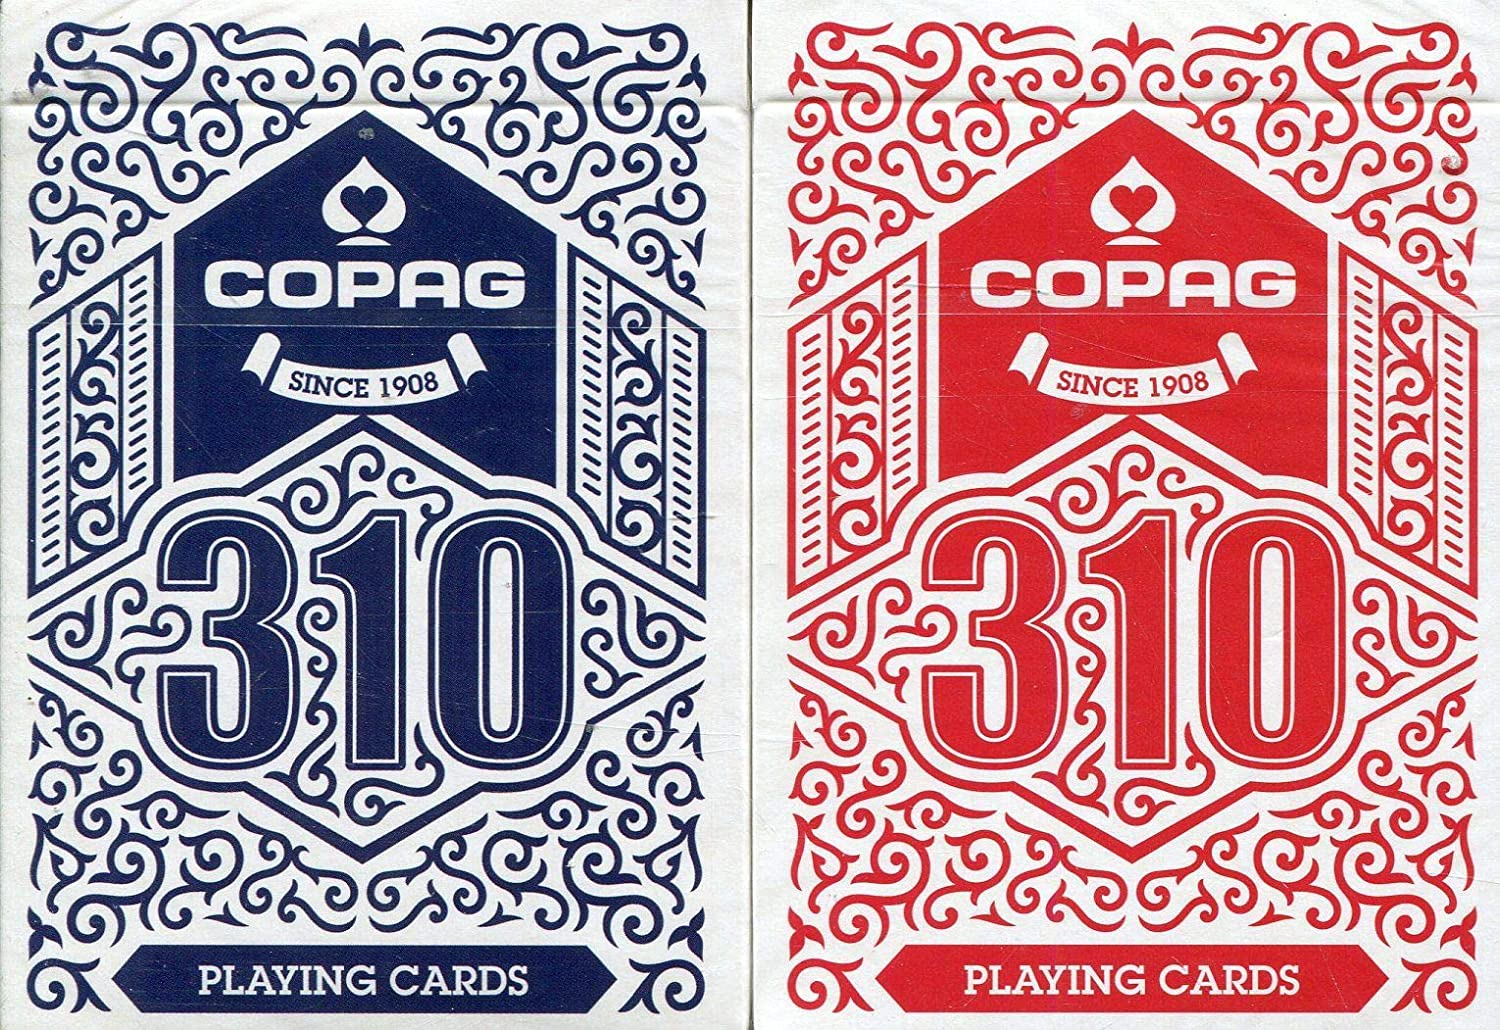 Copag 310 Playing Cards Blue /& Red Editions Made in Europe 2-Decks